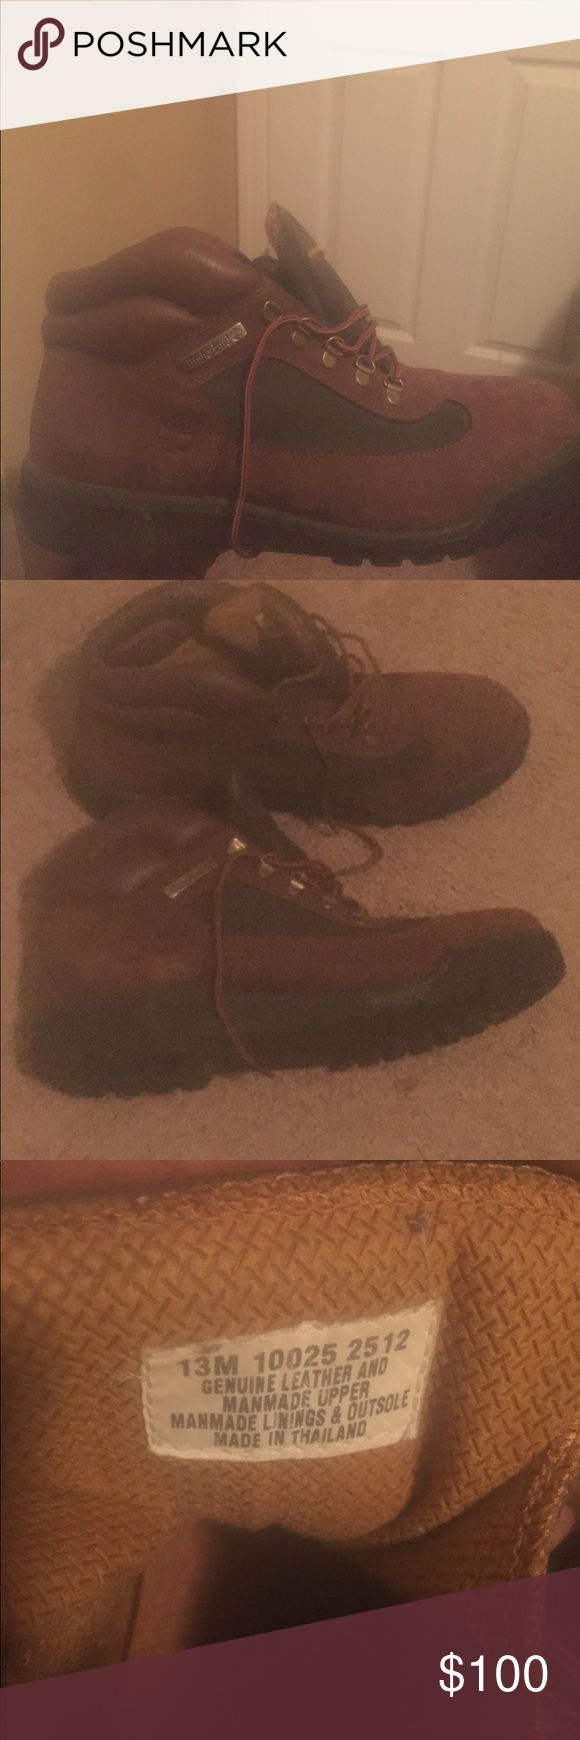 Timberland Field Boots Beef and broccoli Timberland field boots in a size 13. Maybe worn 10 times. 9/10 Timberland Shoes Boots